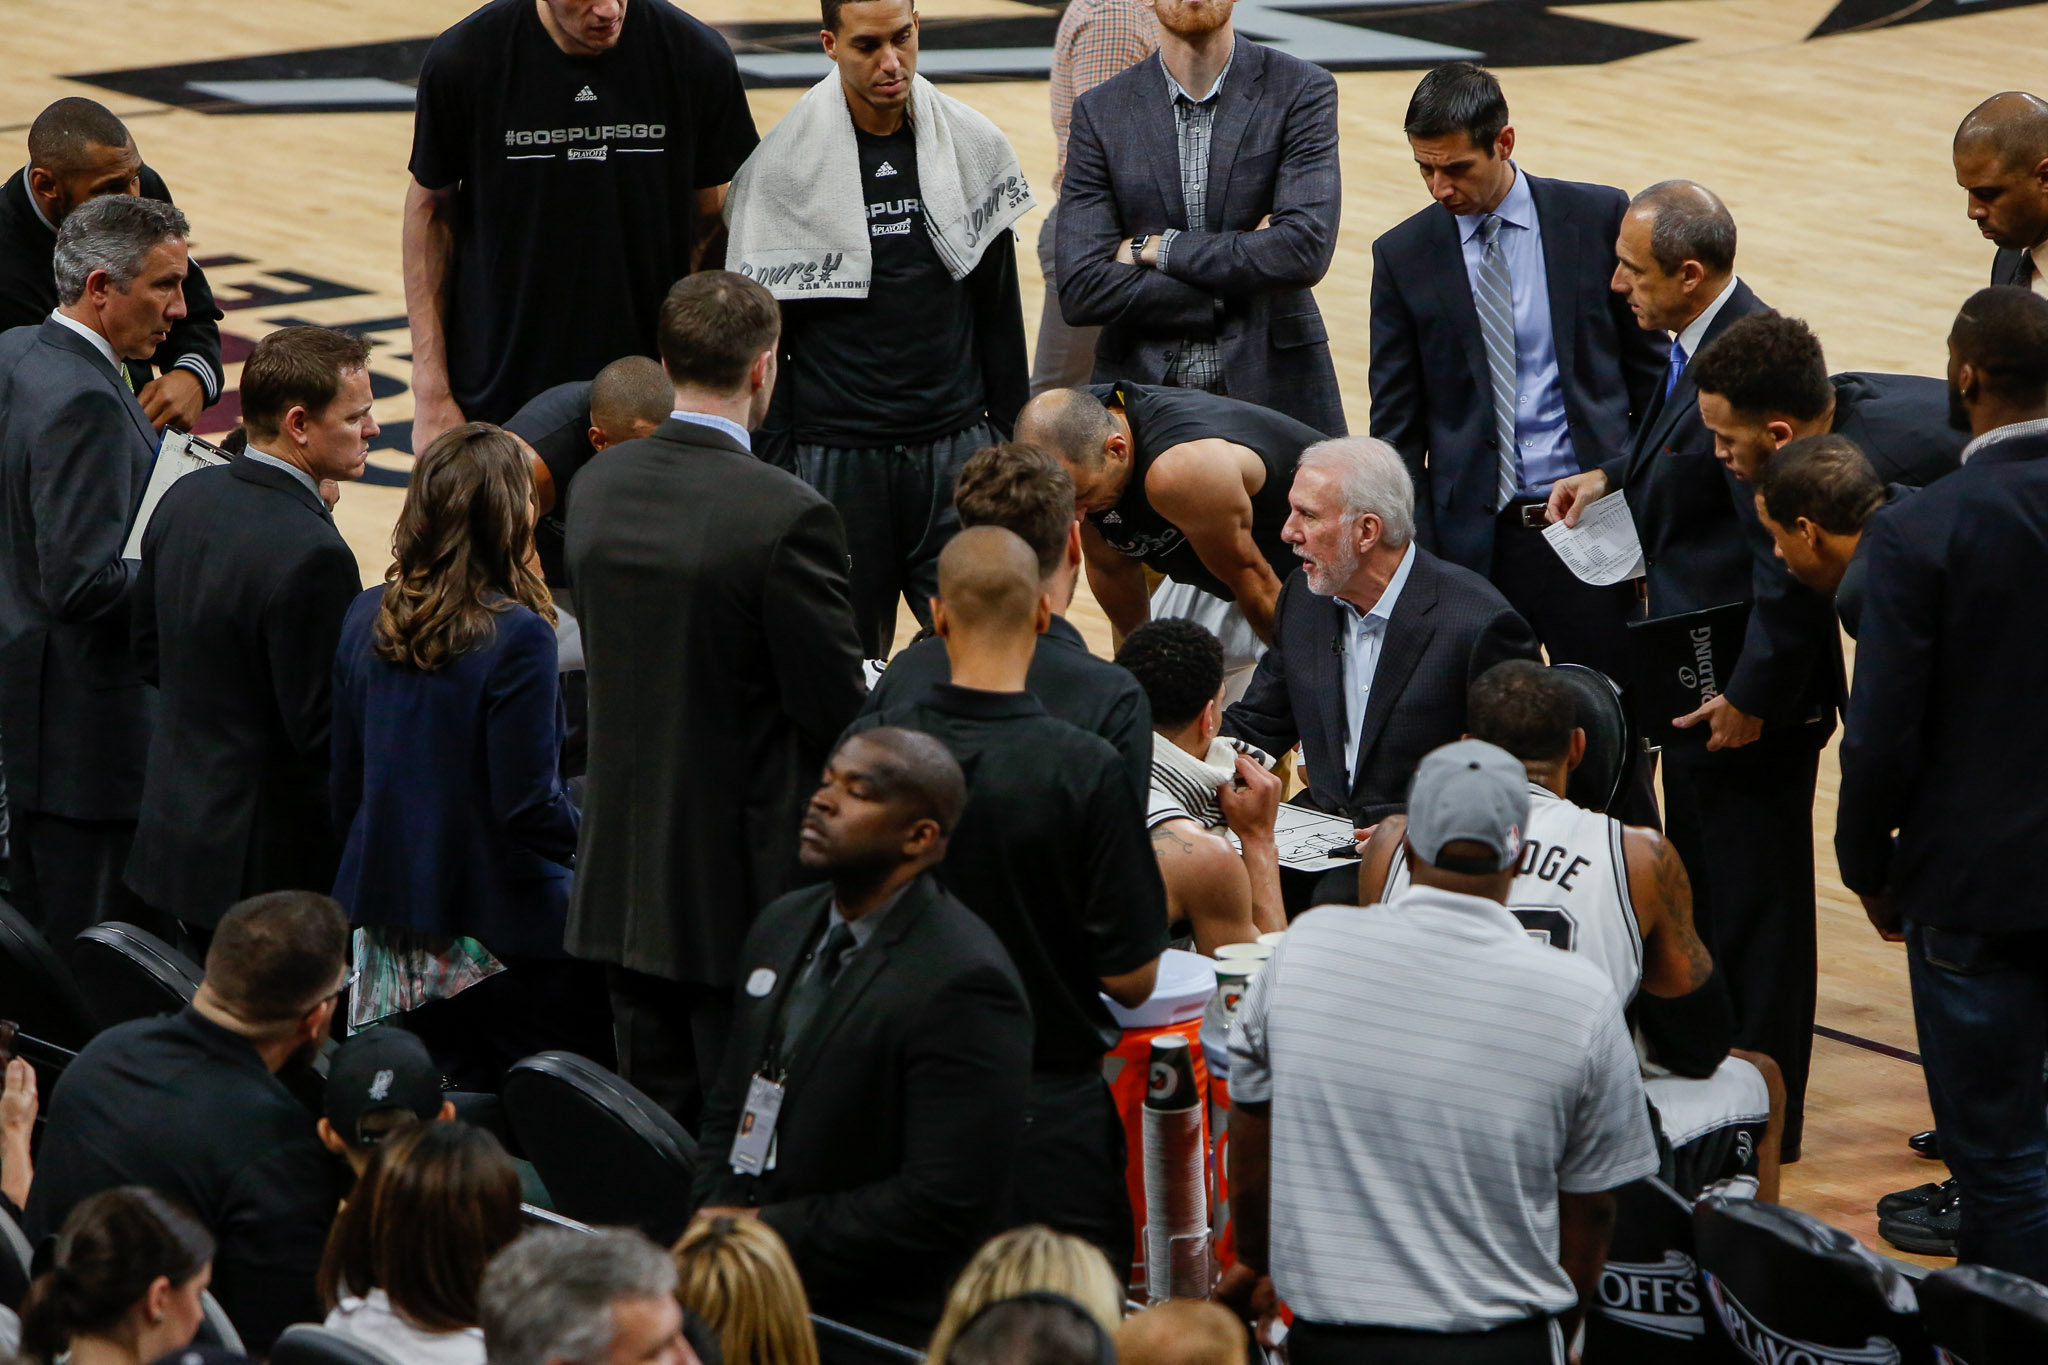 Coach Gregg Popovich gathers his players during a twenty second timeout. Photo by Scott Ball.